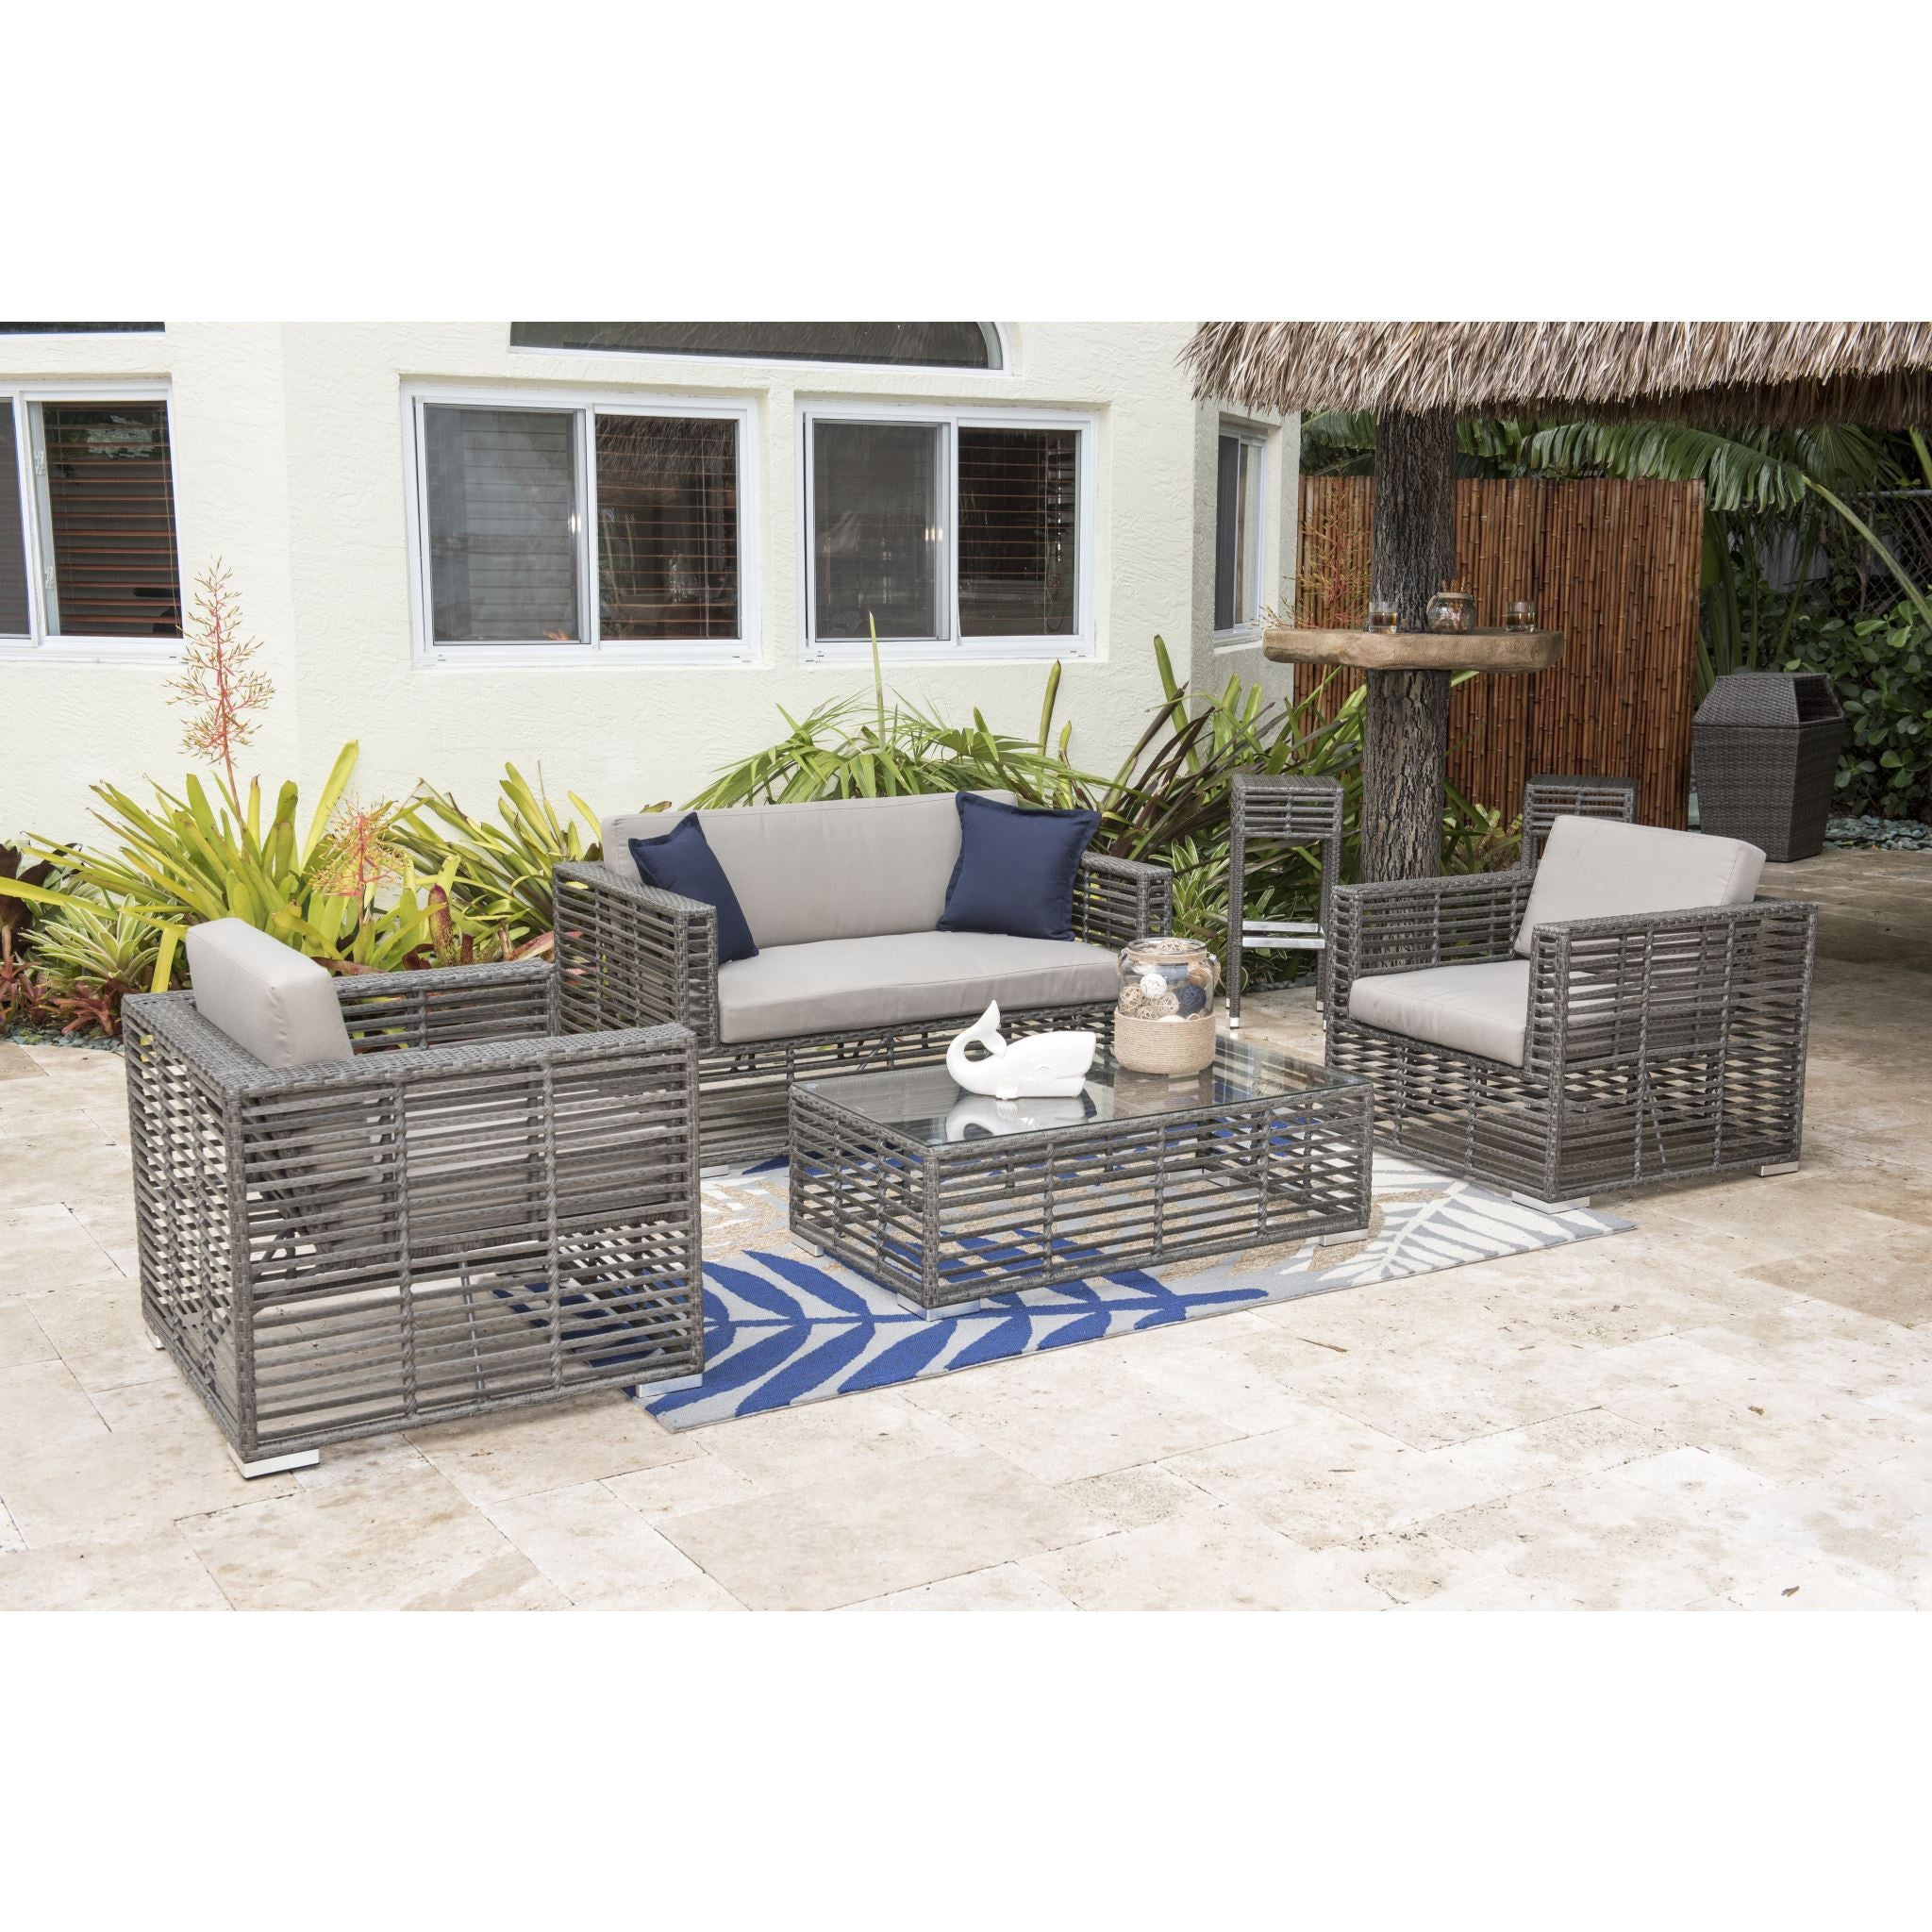 Hospitality Rattan 4 Pc Wicker Conversation   Living Set 1461 GRY 4PC  SET. Hospitality Rattan   BetterPatio com